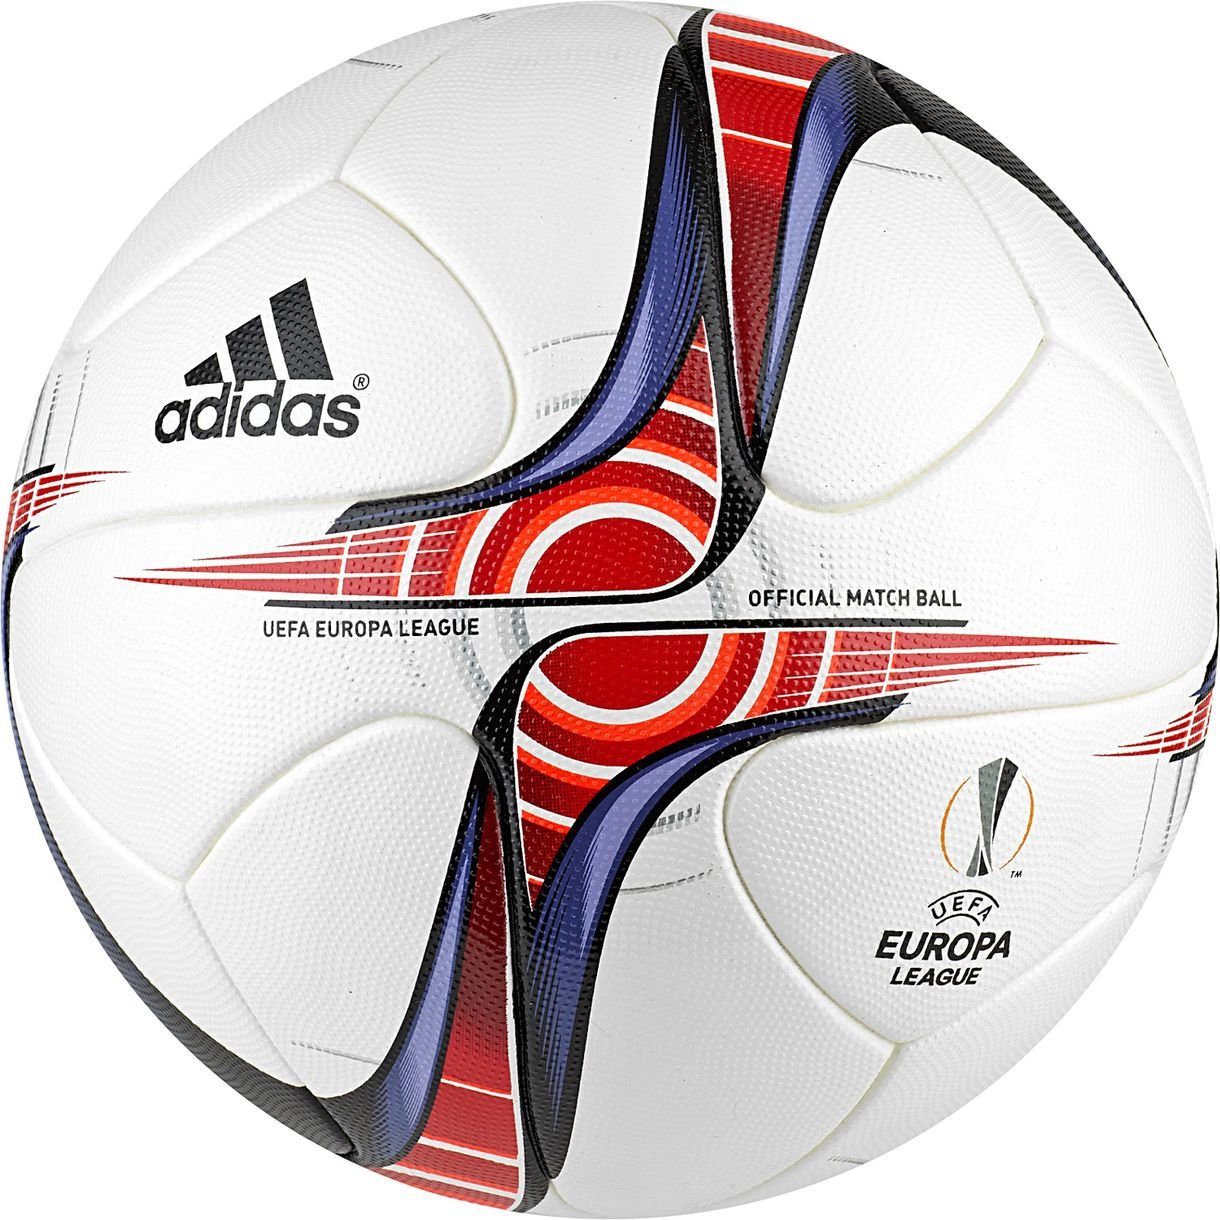 Lopta adidas UEFA Europa League Official Match